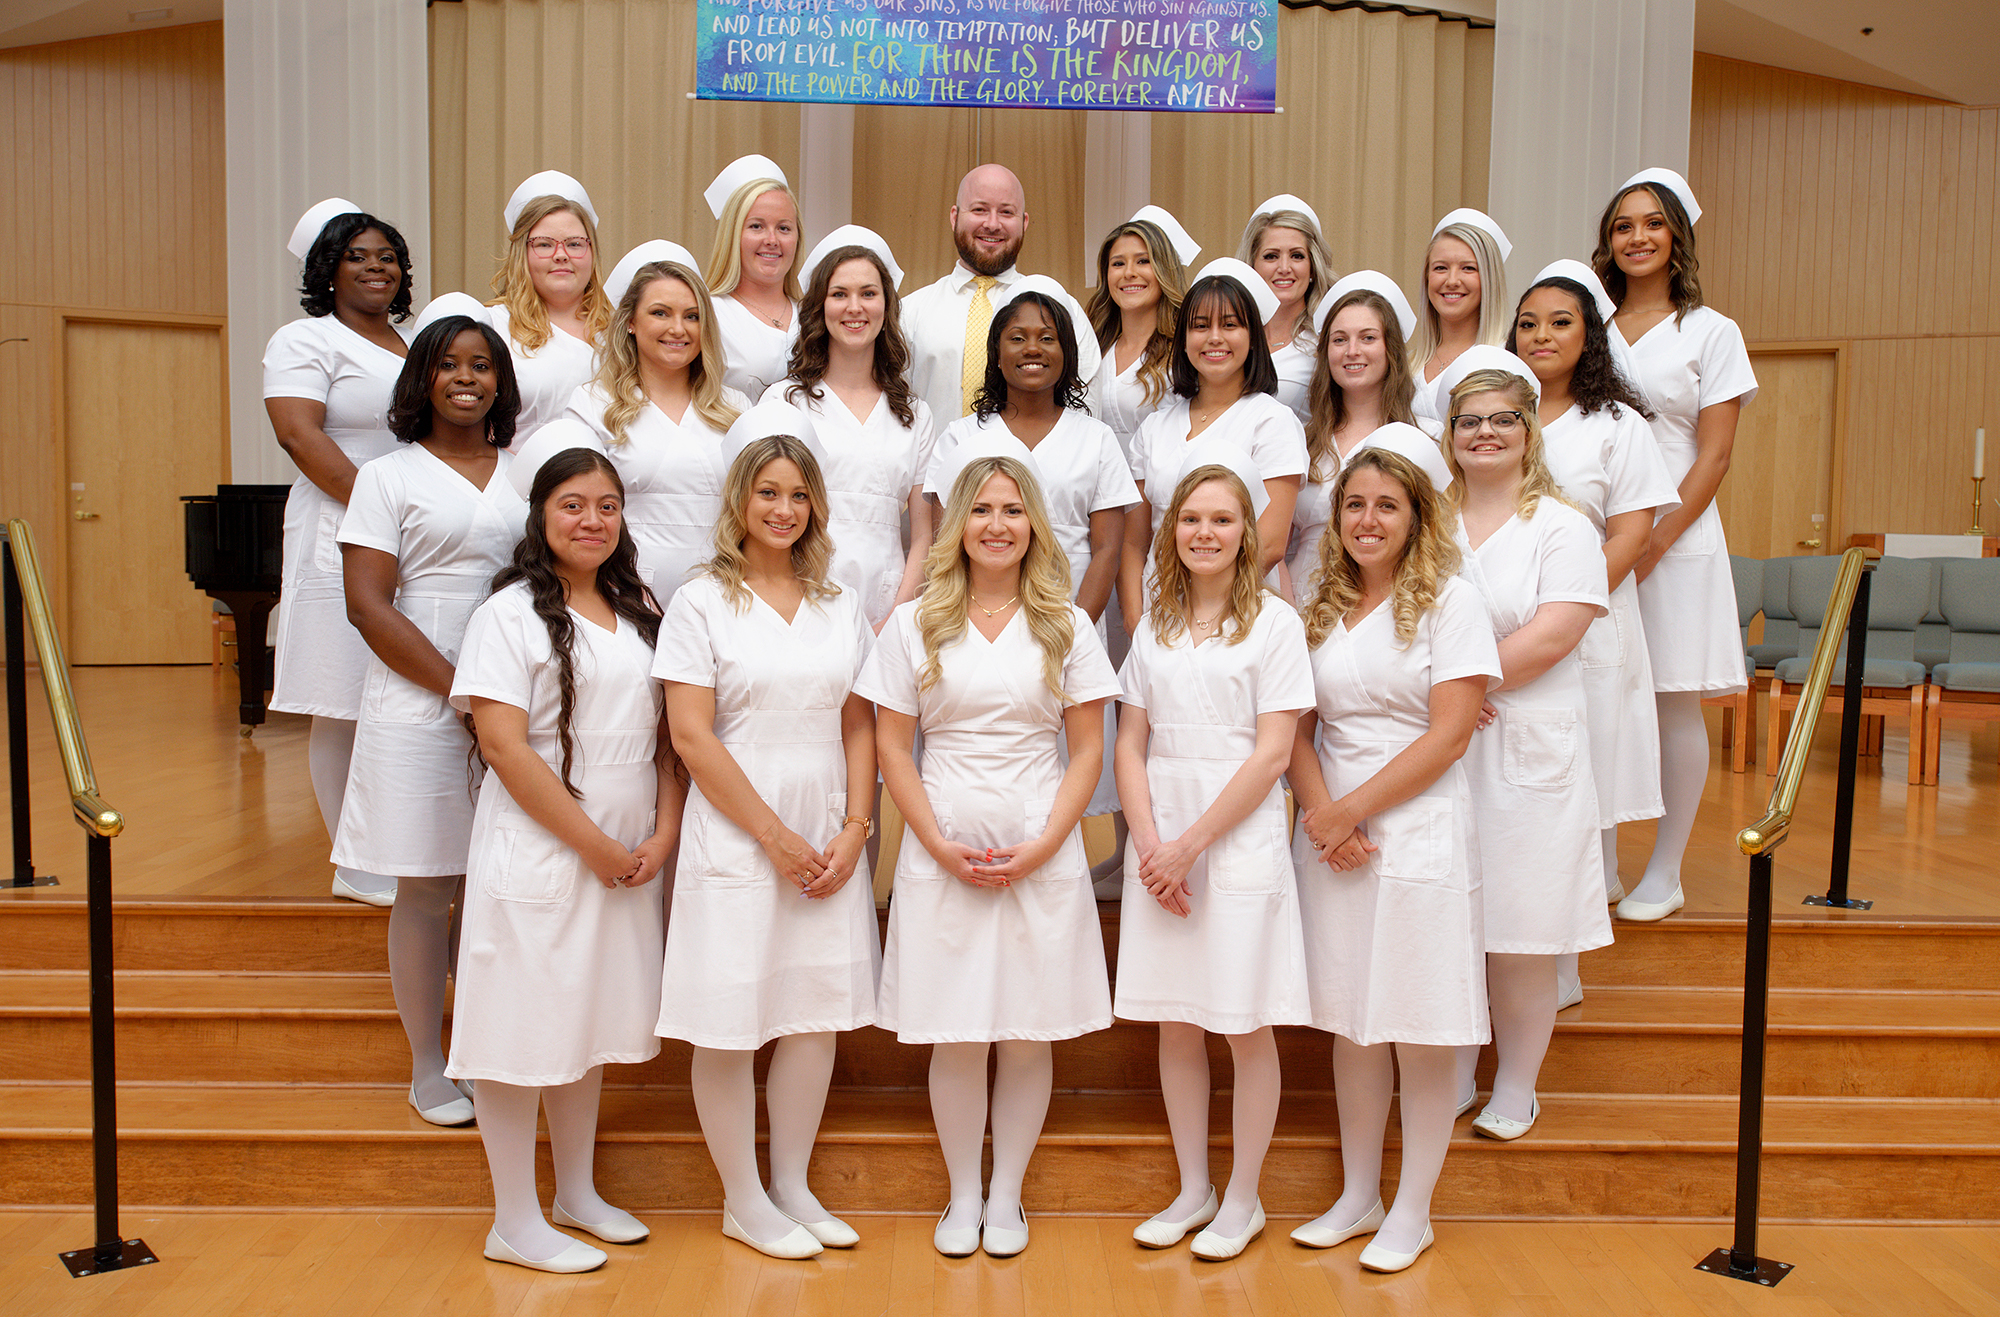 The Margaret H. Rollins School of Nursing class of 2019 ranked No. 1 in the state after the group finished with an 100% pass rate for the NCLEX exam.